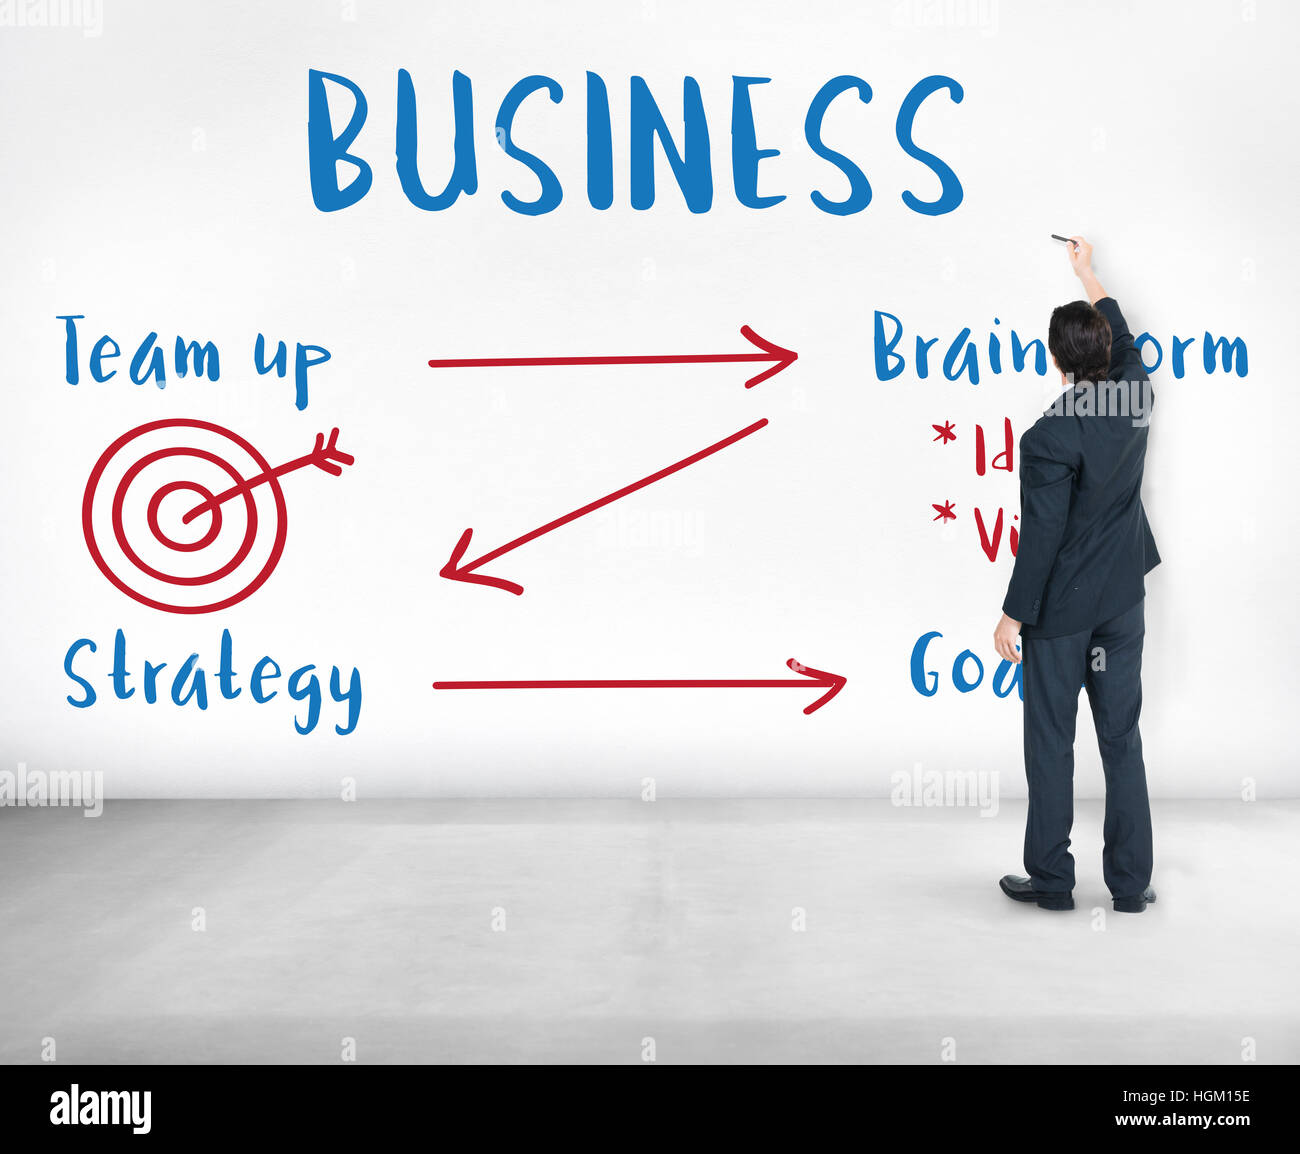 startup business plan graph concept stock photo 130747050 alamy